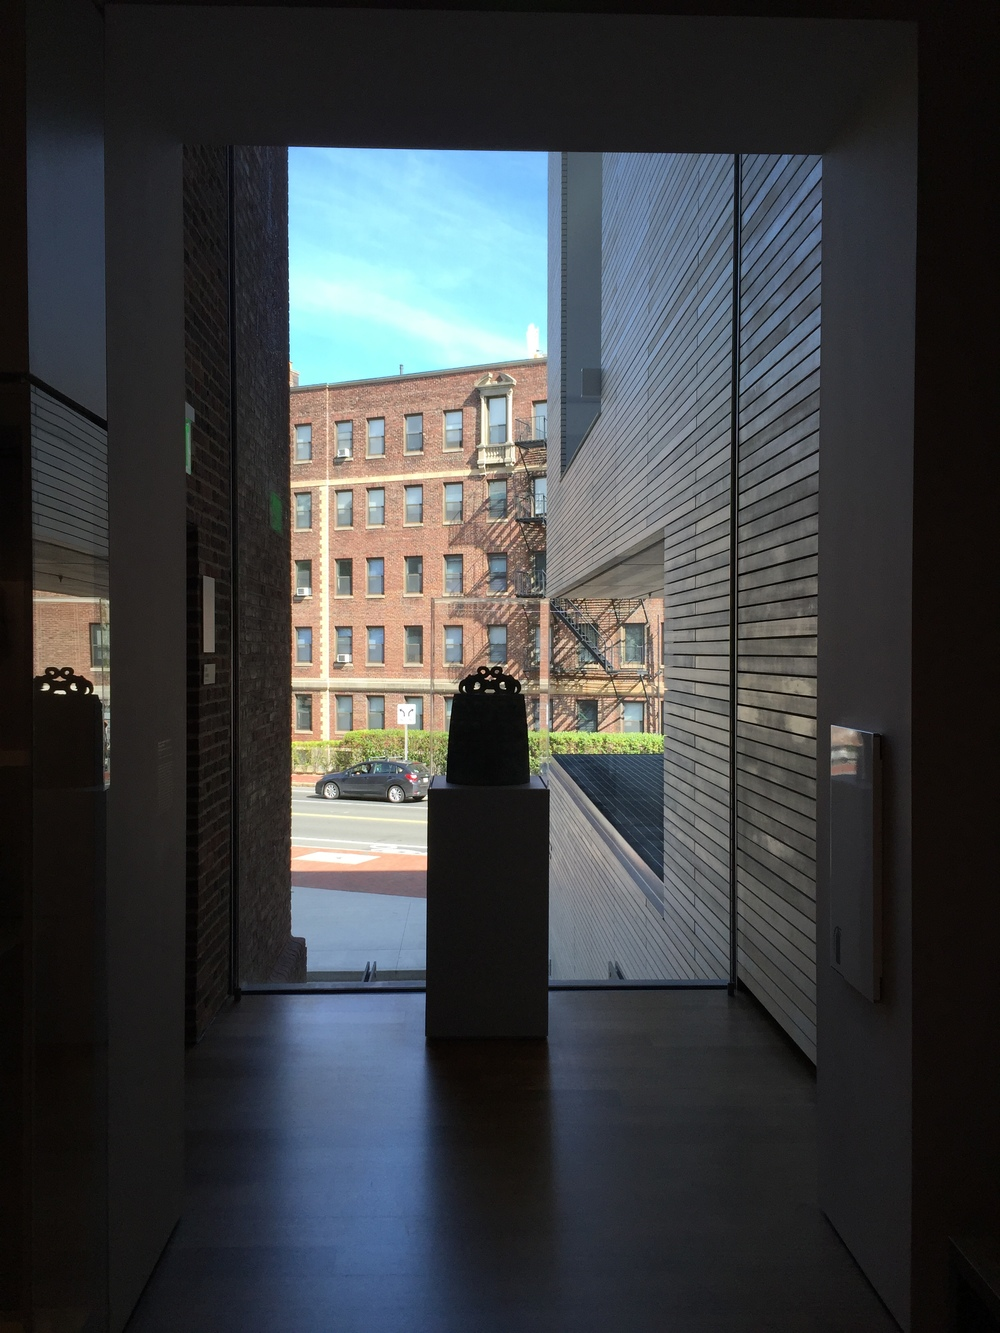 Artefacts seen within a daylit gallery offering views to neighbouring Harvard Buildings become more of an expression of everyday life